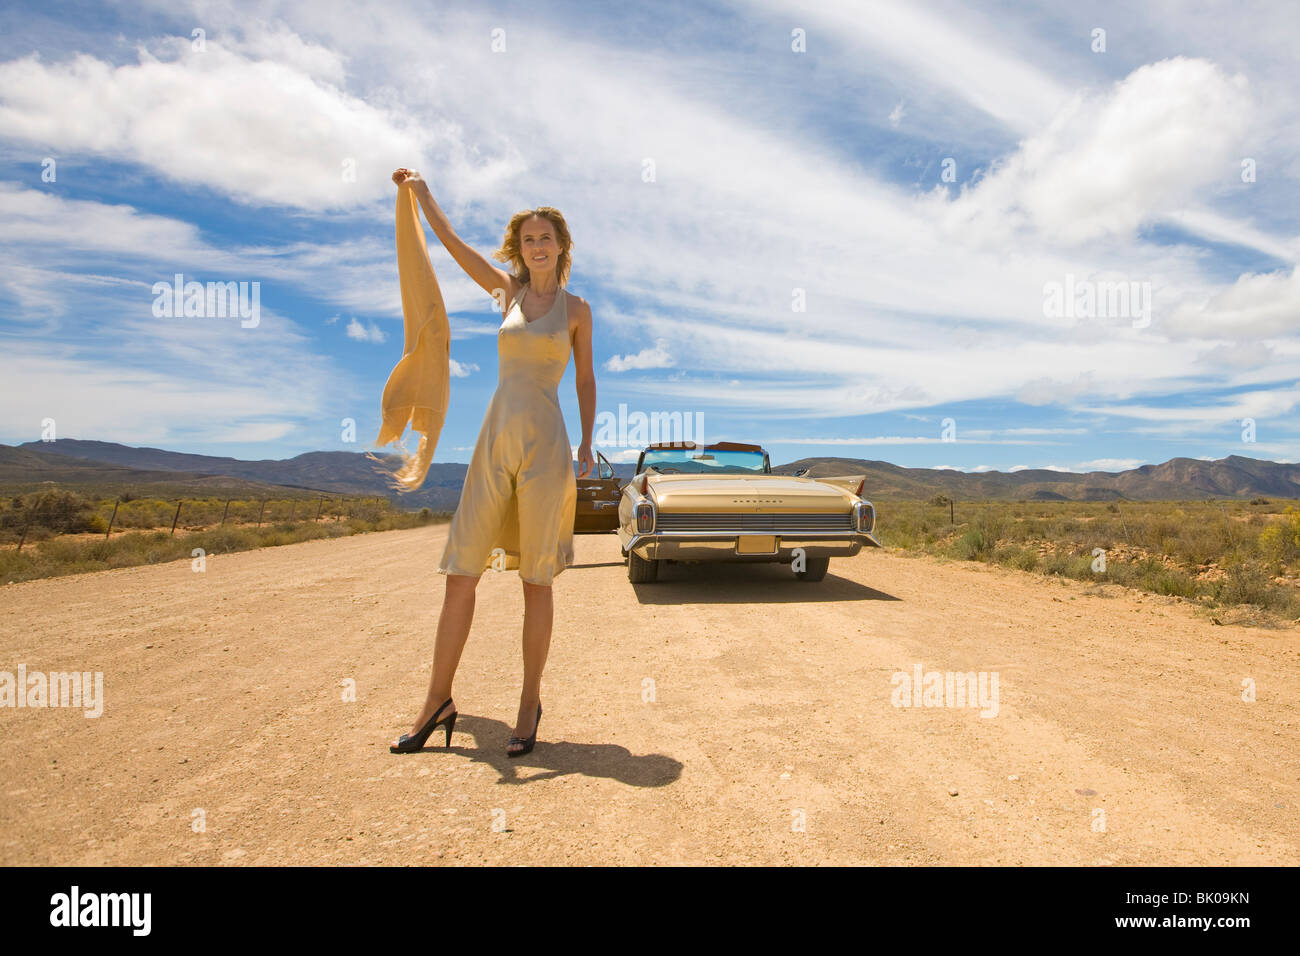 Helpless woman in desert - Stock Image